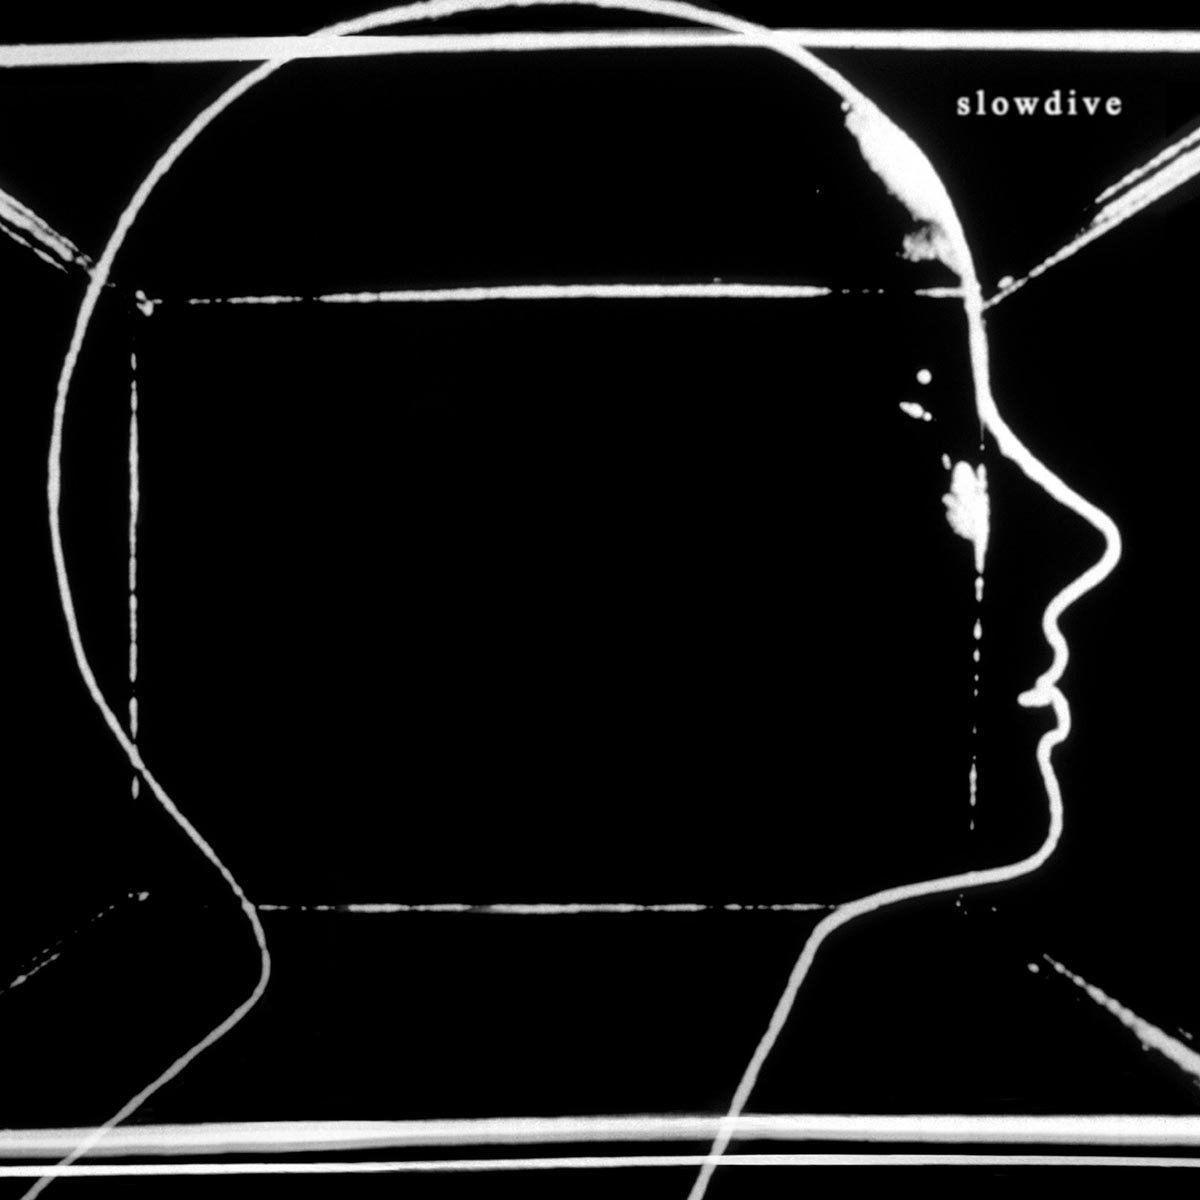 Slowdive - Slowdive (Blk) [Colored Vinyl] (Ep) (Grn) [Limited Edition] [180 Gram] (Hol)